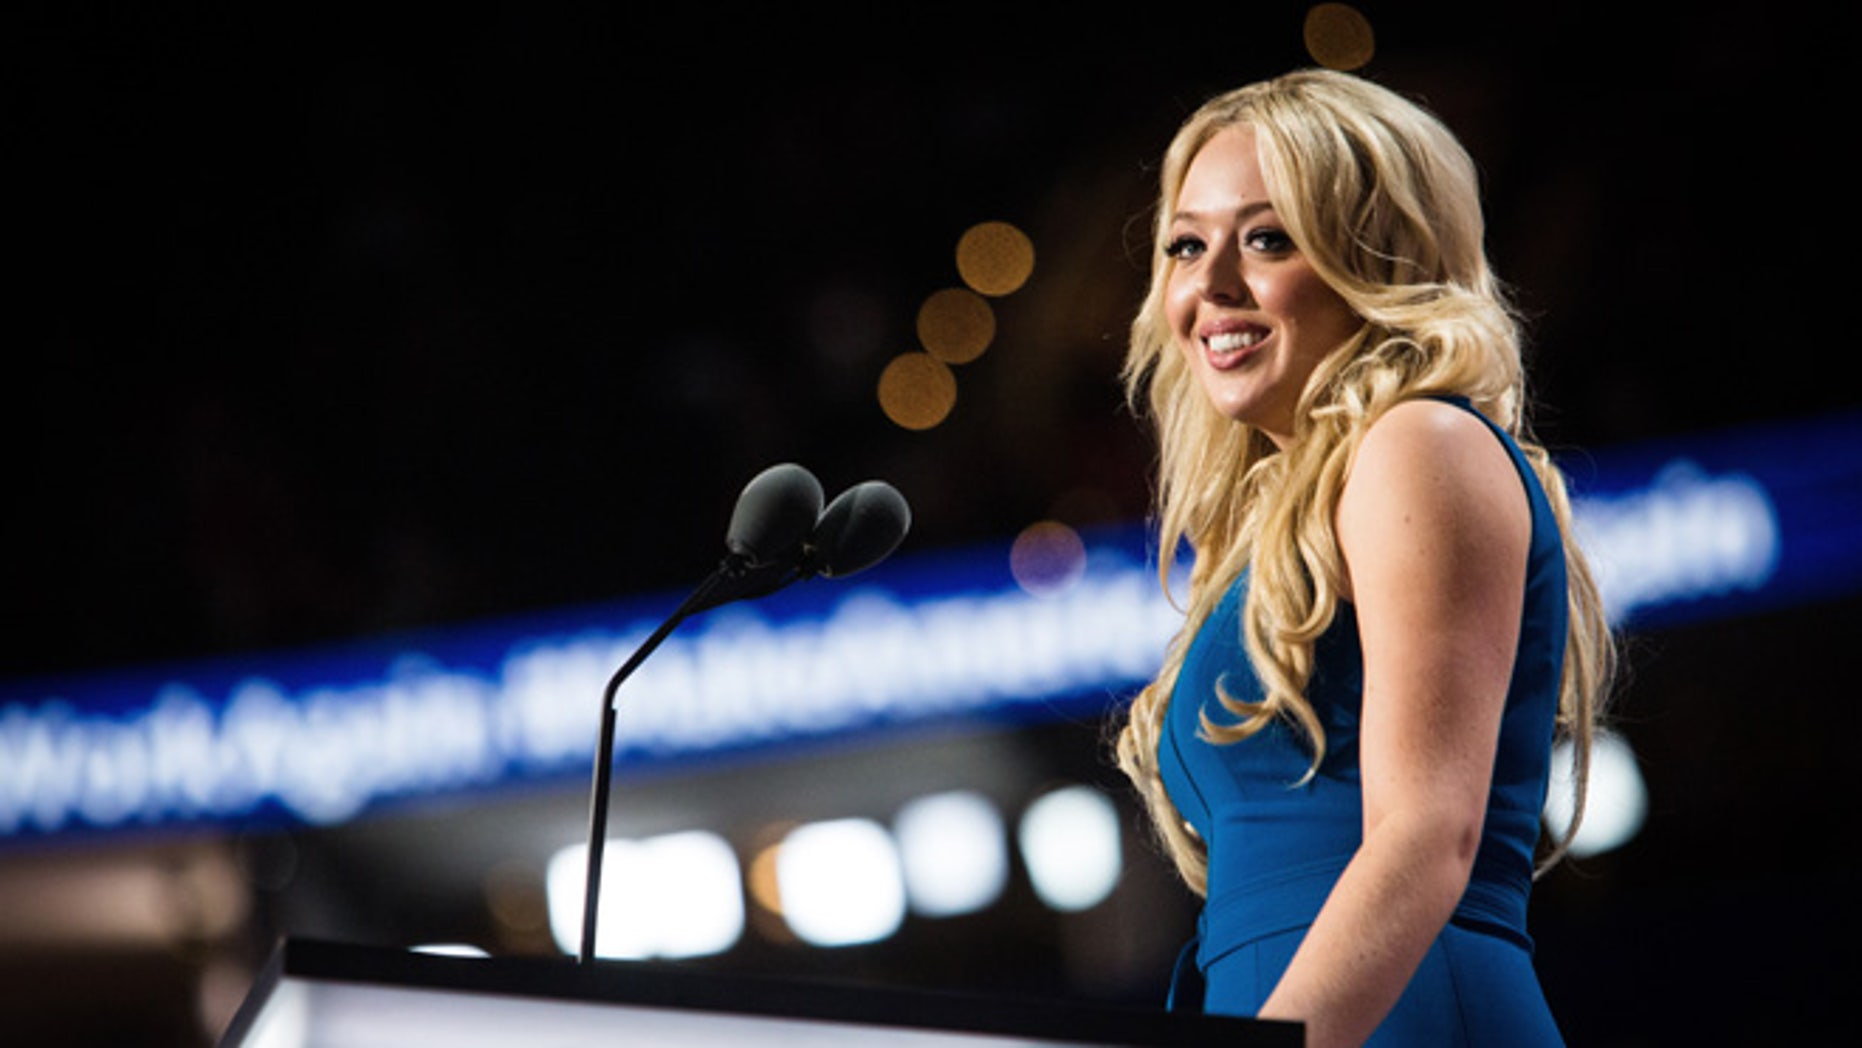 July 19, 2016: Tiffany Trump speaks at the Republican National Convention in Cleveland, Ohio.